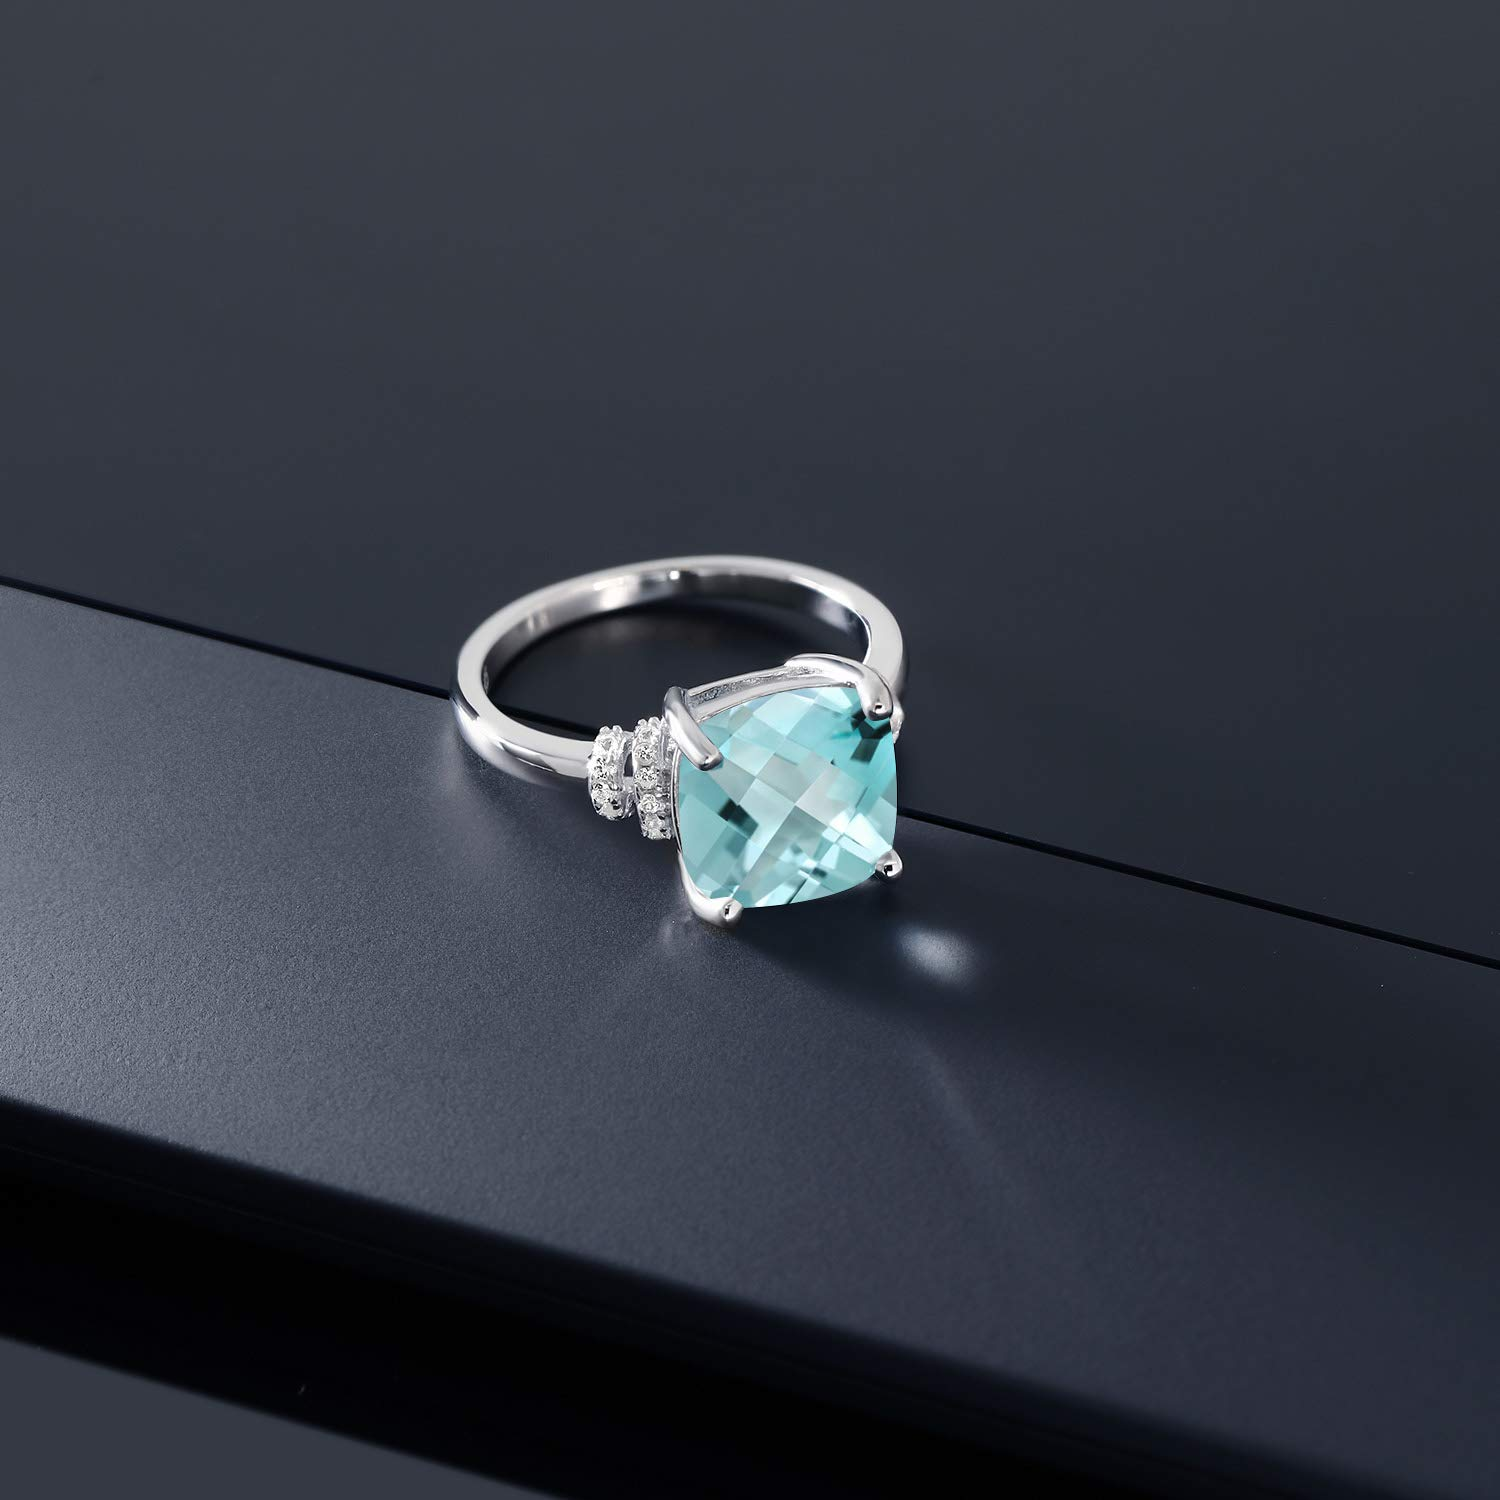 Gem Stone King 4.94 Ct Cushion Checkerboard Sky Blue Topaz 925 Sterling Silver Ring